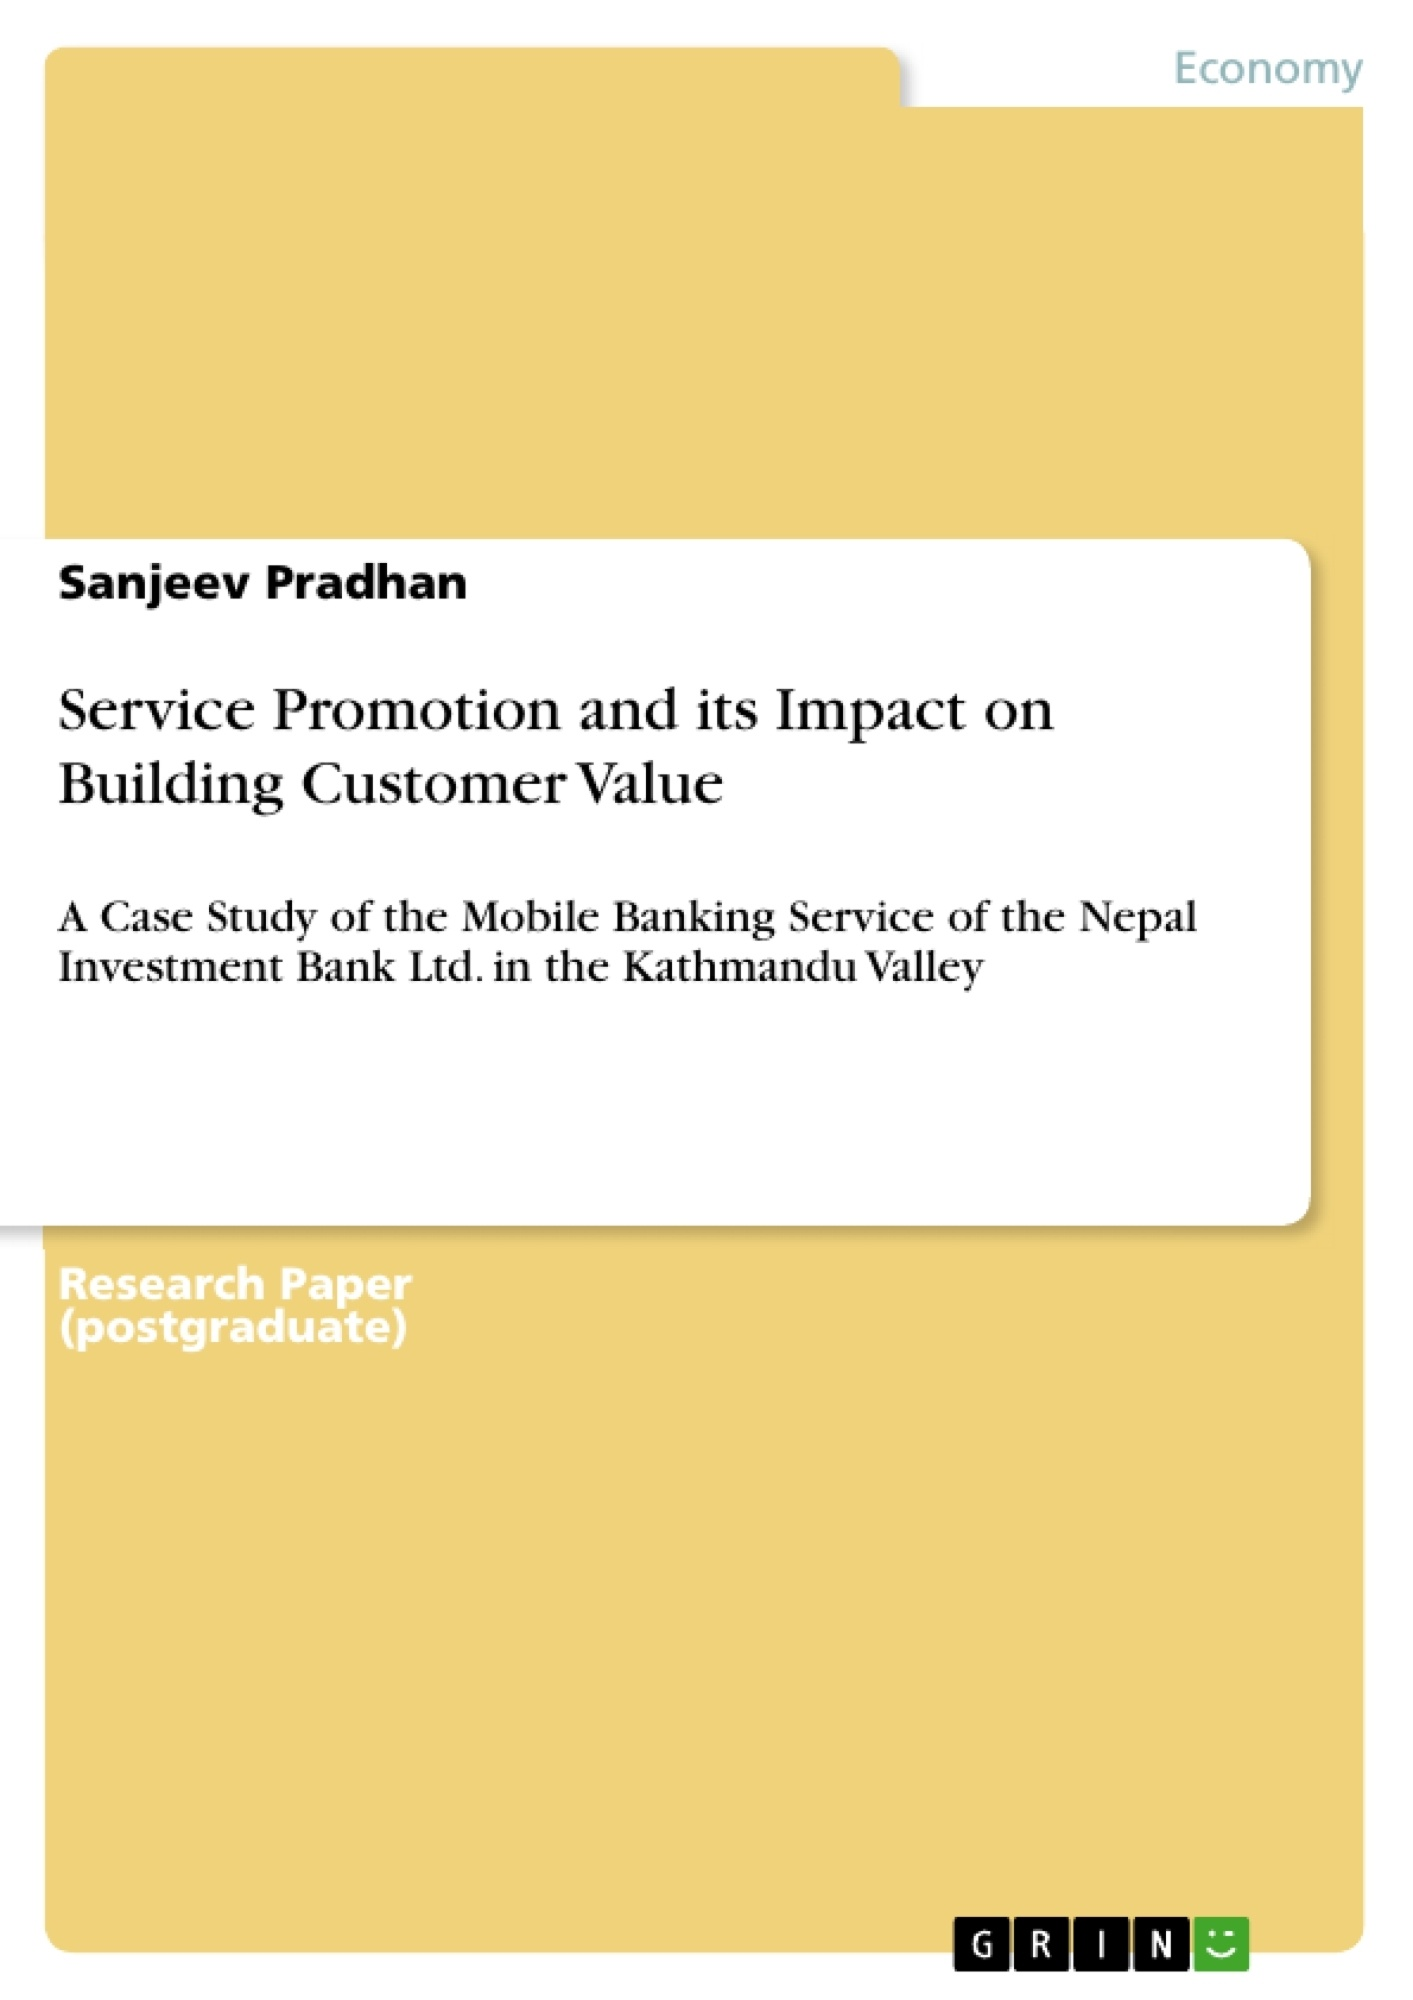 Title: Service Promotion and its Impact on Building Customer Value